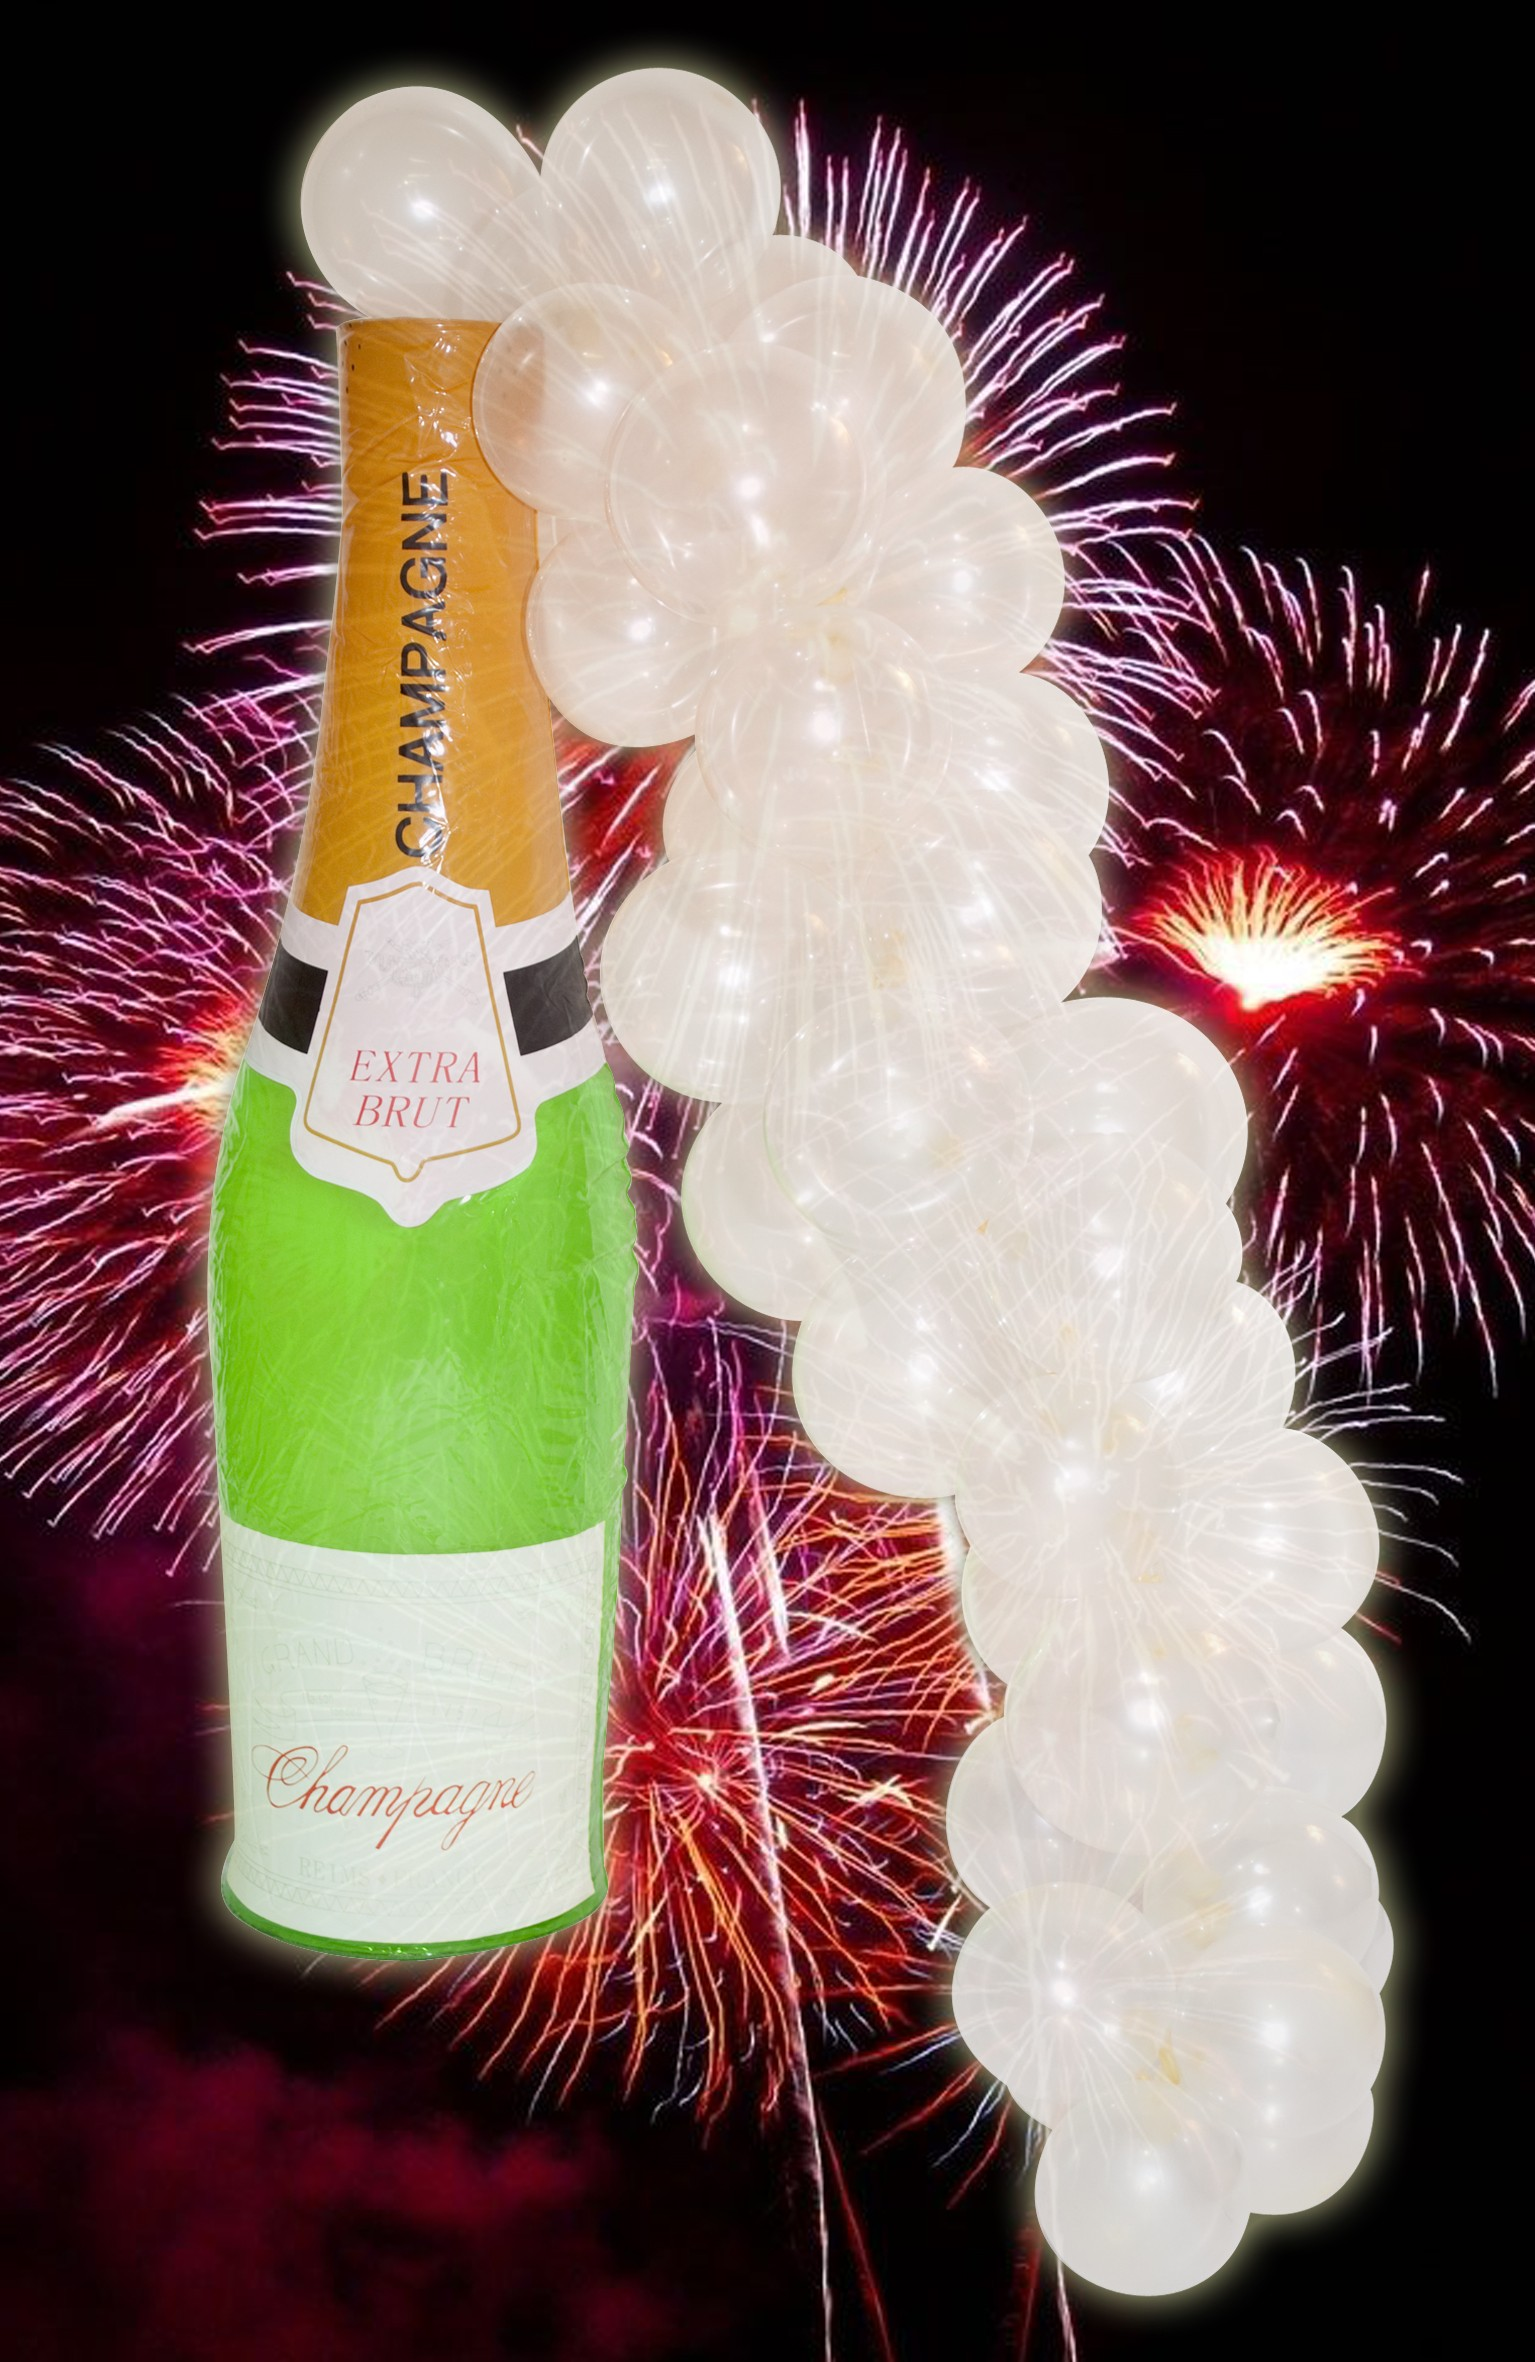 73CM Inflatable Champagne Bottle With Bubbles Kit